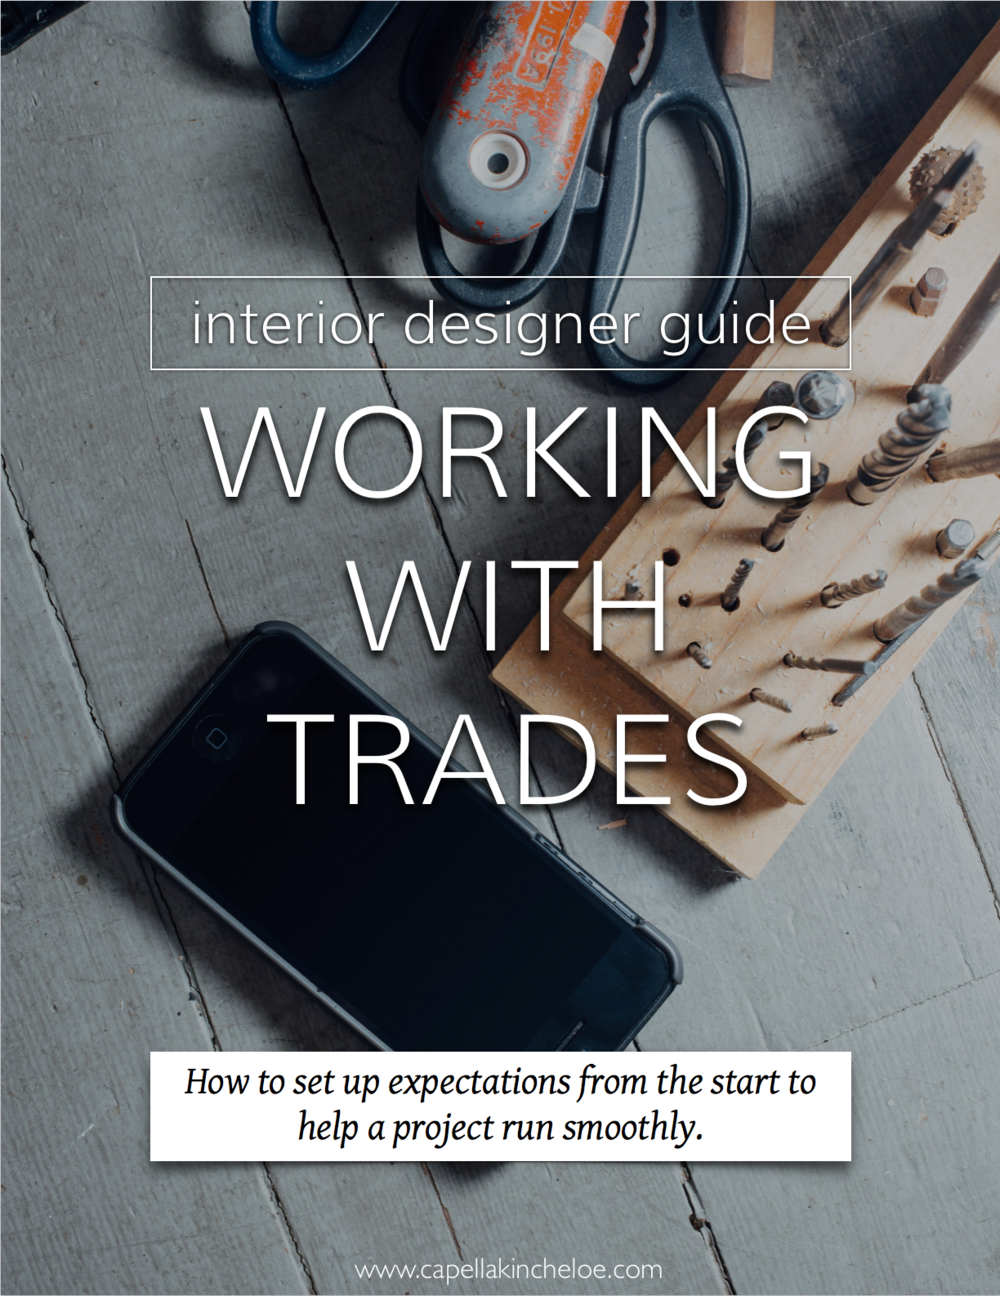 Need help managing trades on your interior design project? Read this. #interiordesignbusiness #cktradesecrets #workingwithtrades